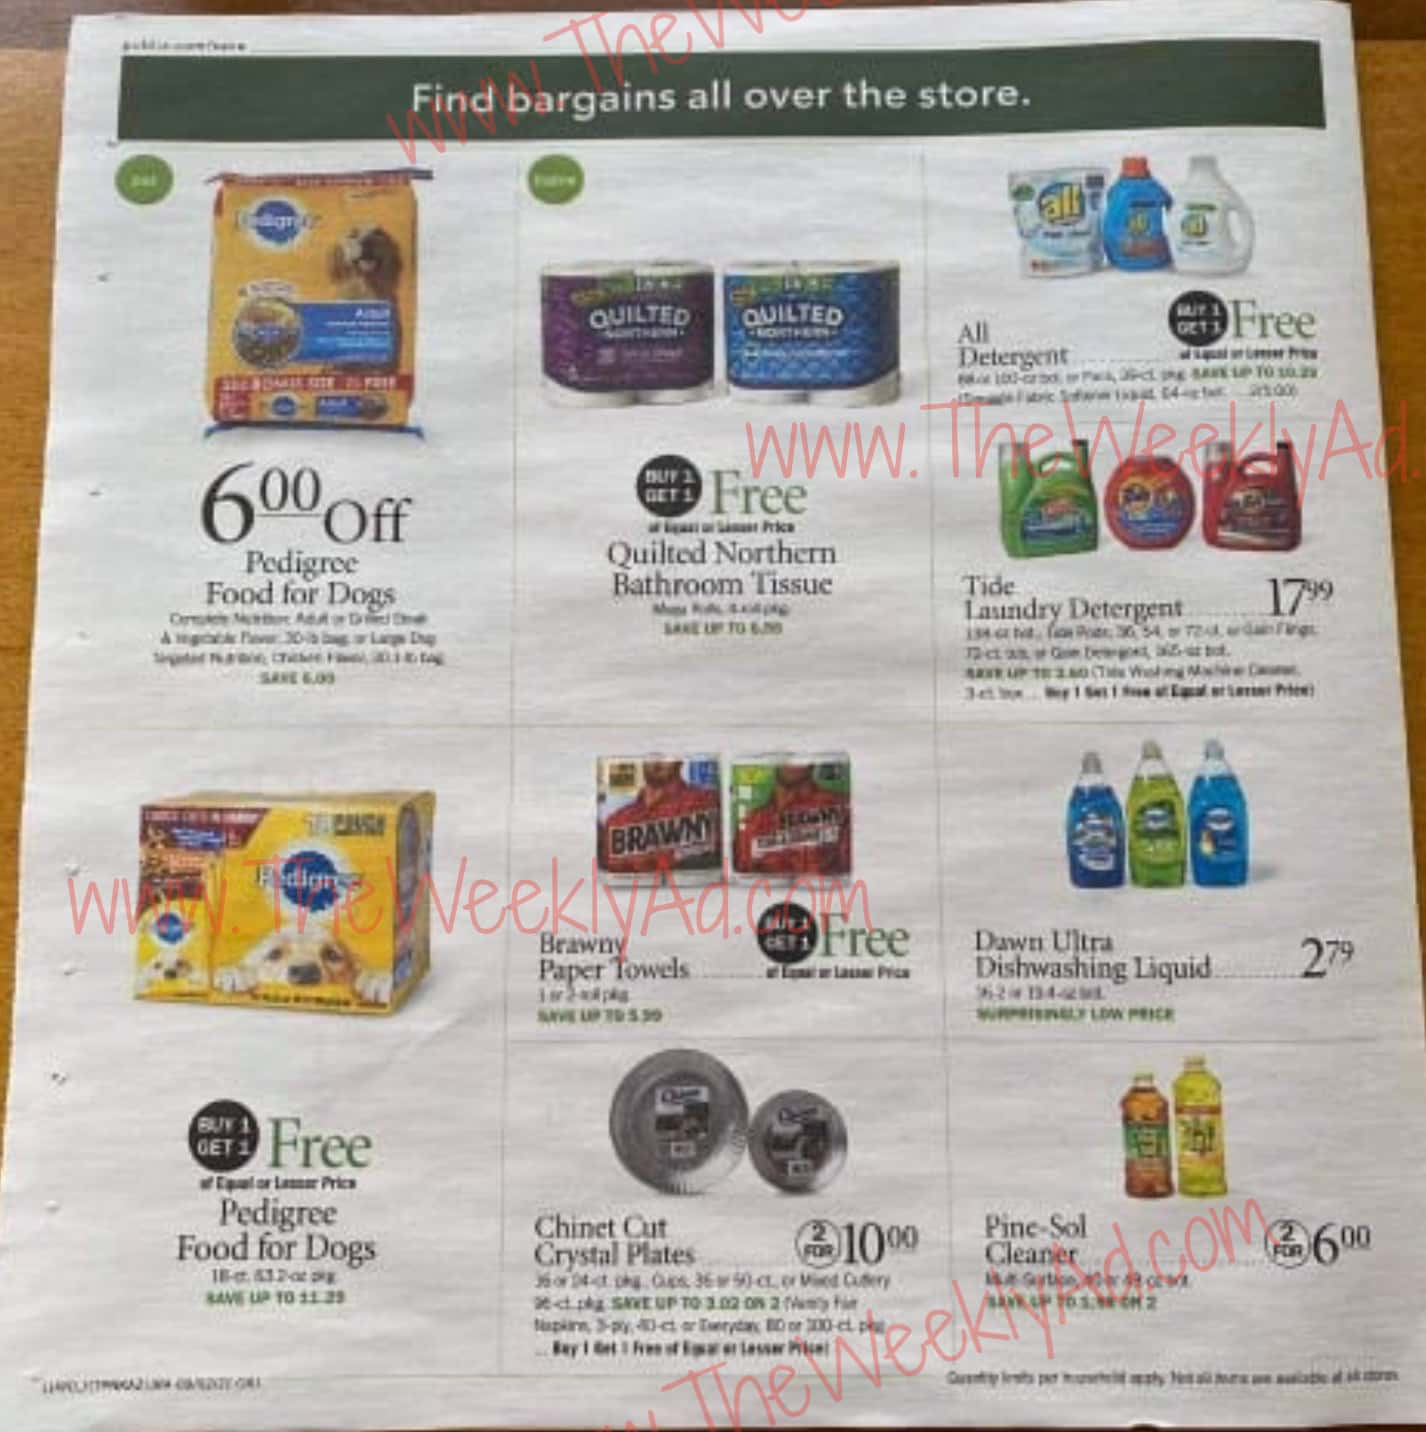 publix_weekly_ad_090121_16